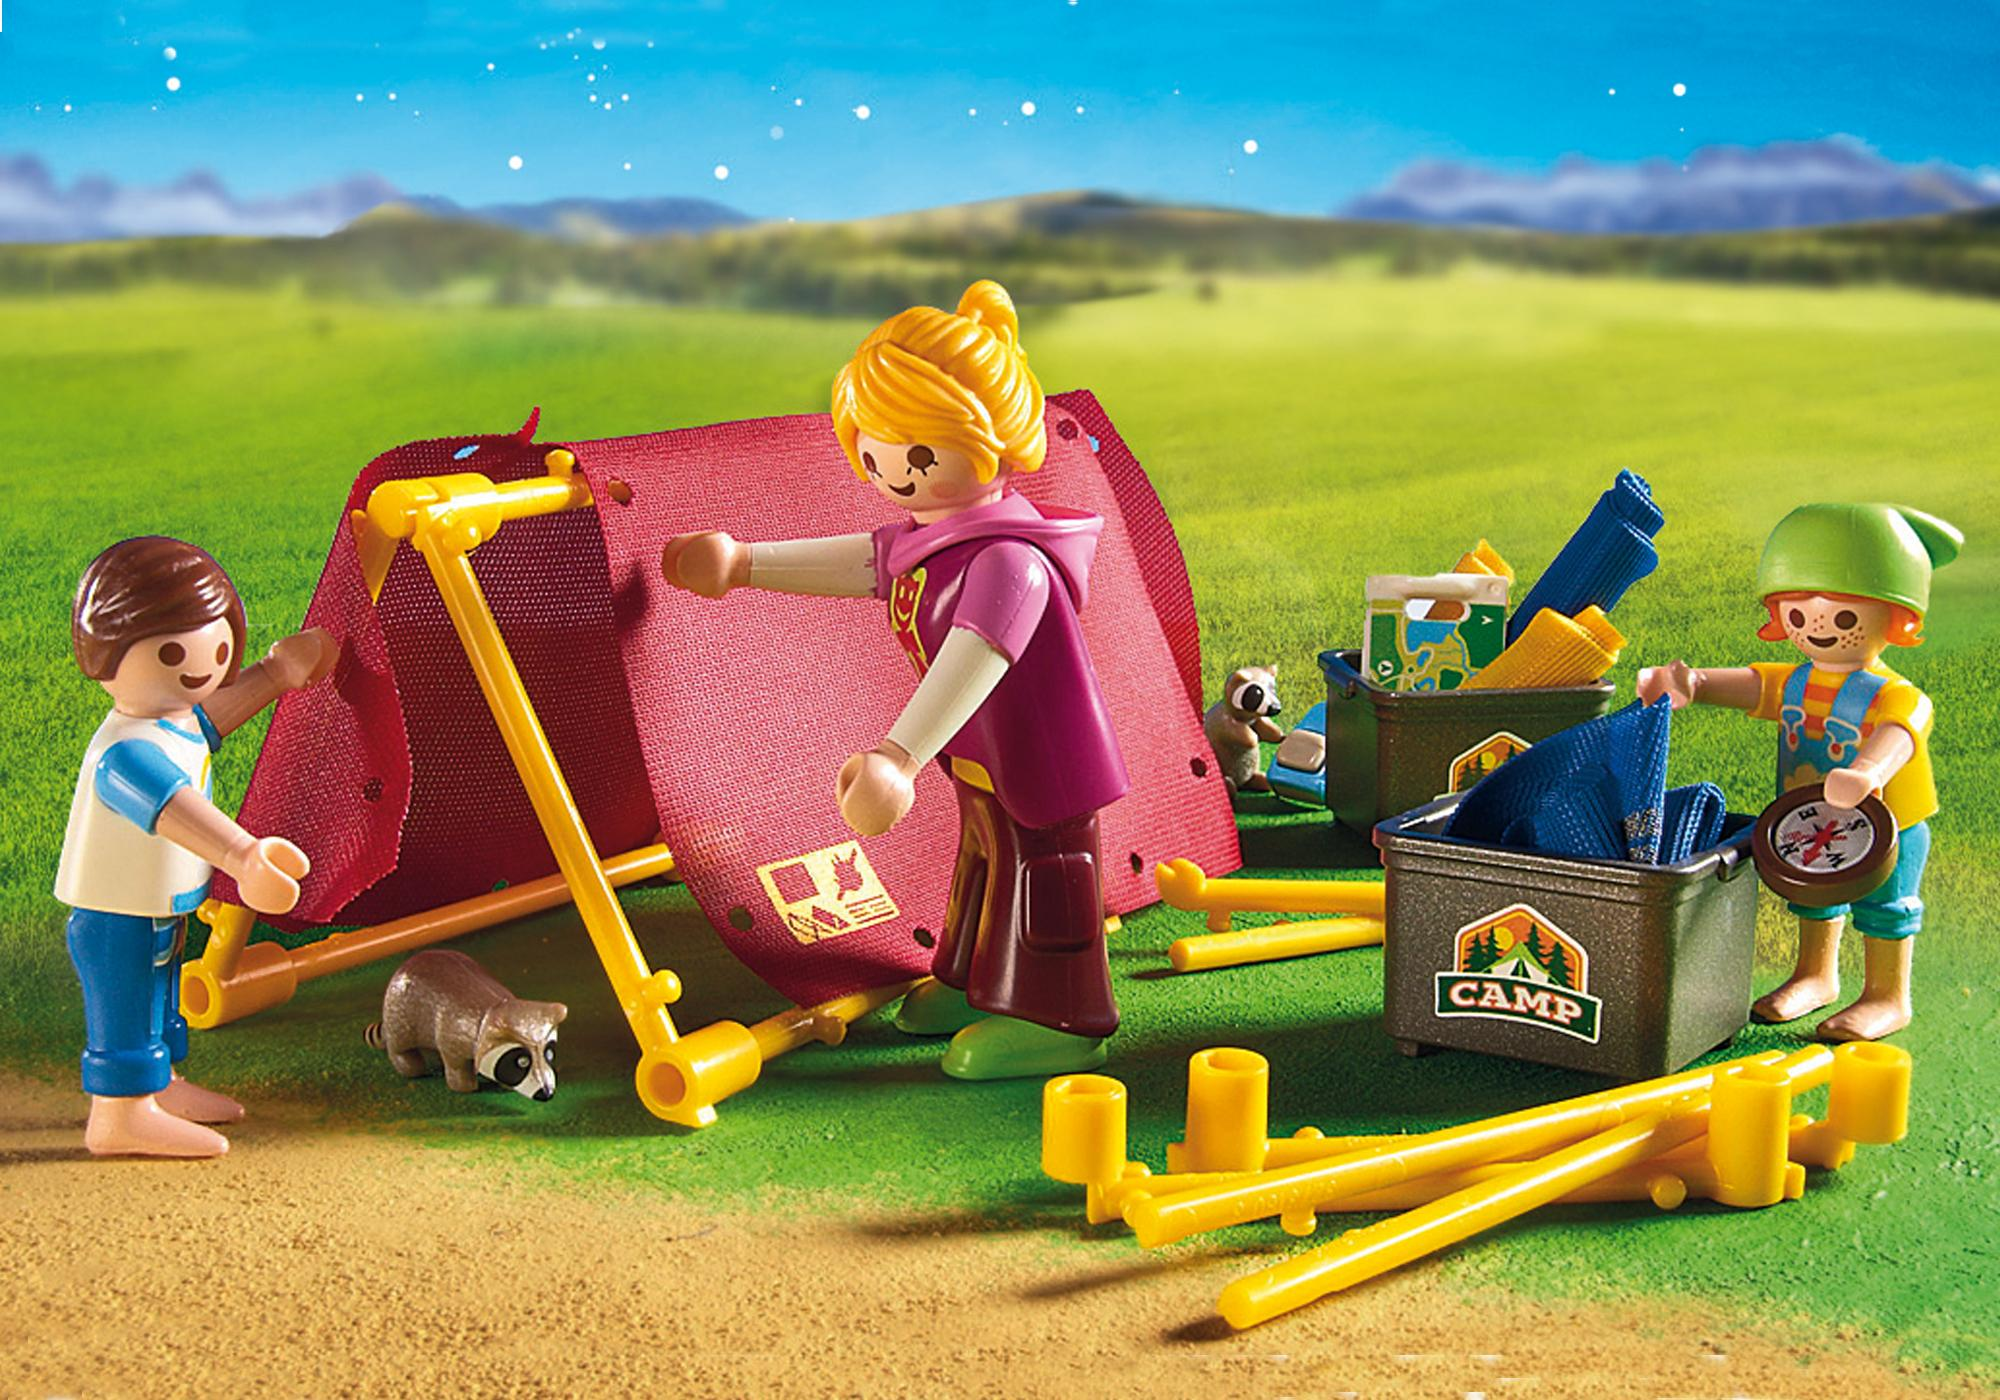 http://media.playmobil.com/i/playmobil/9153_product_extra2